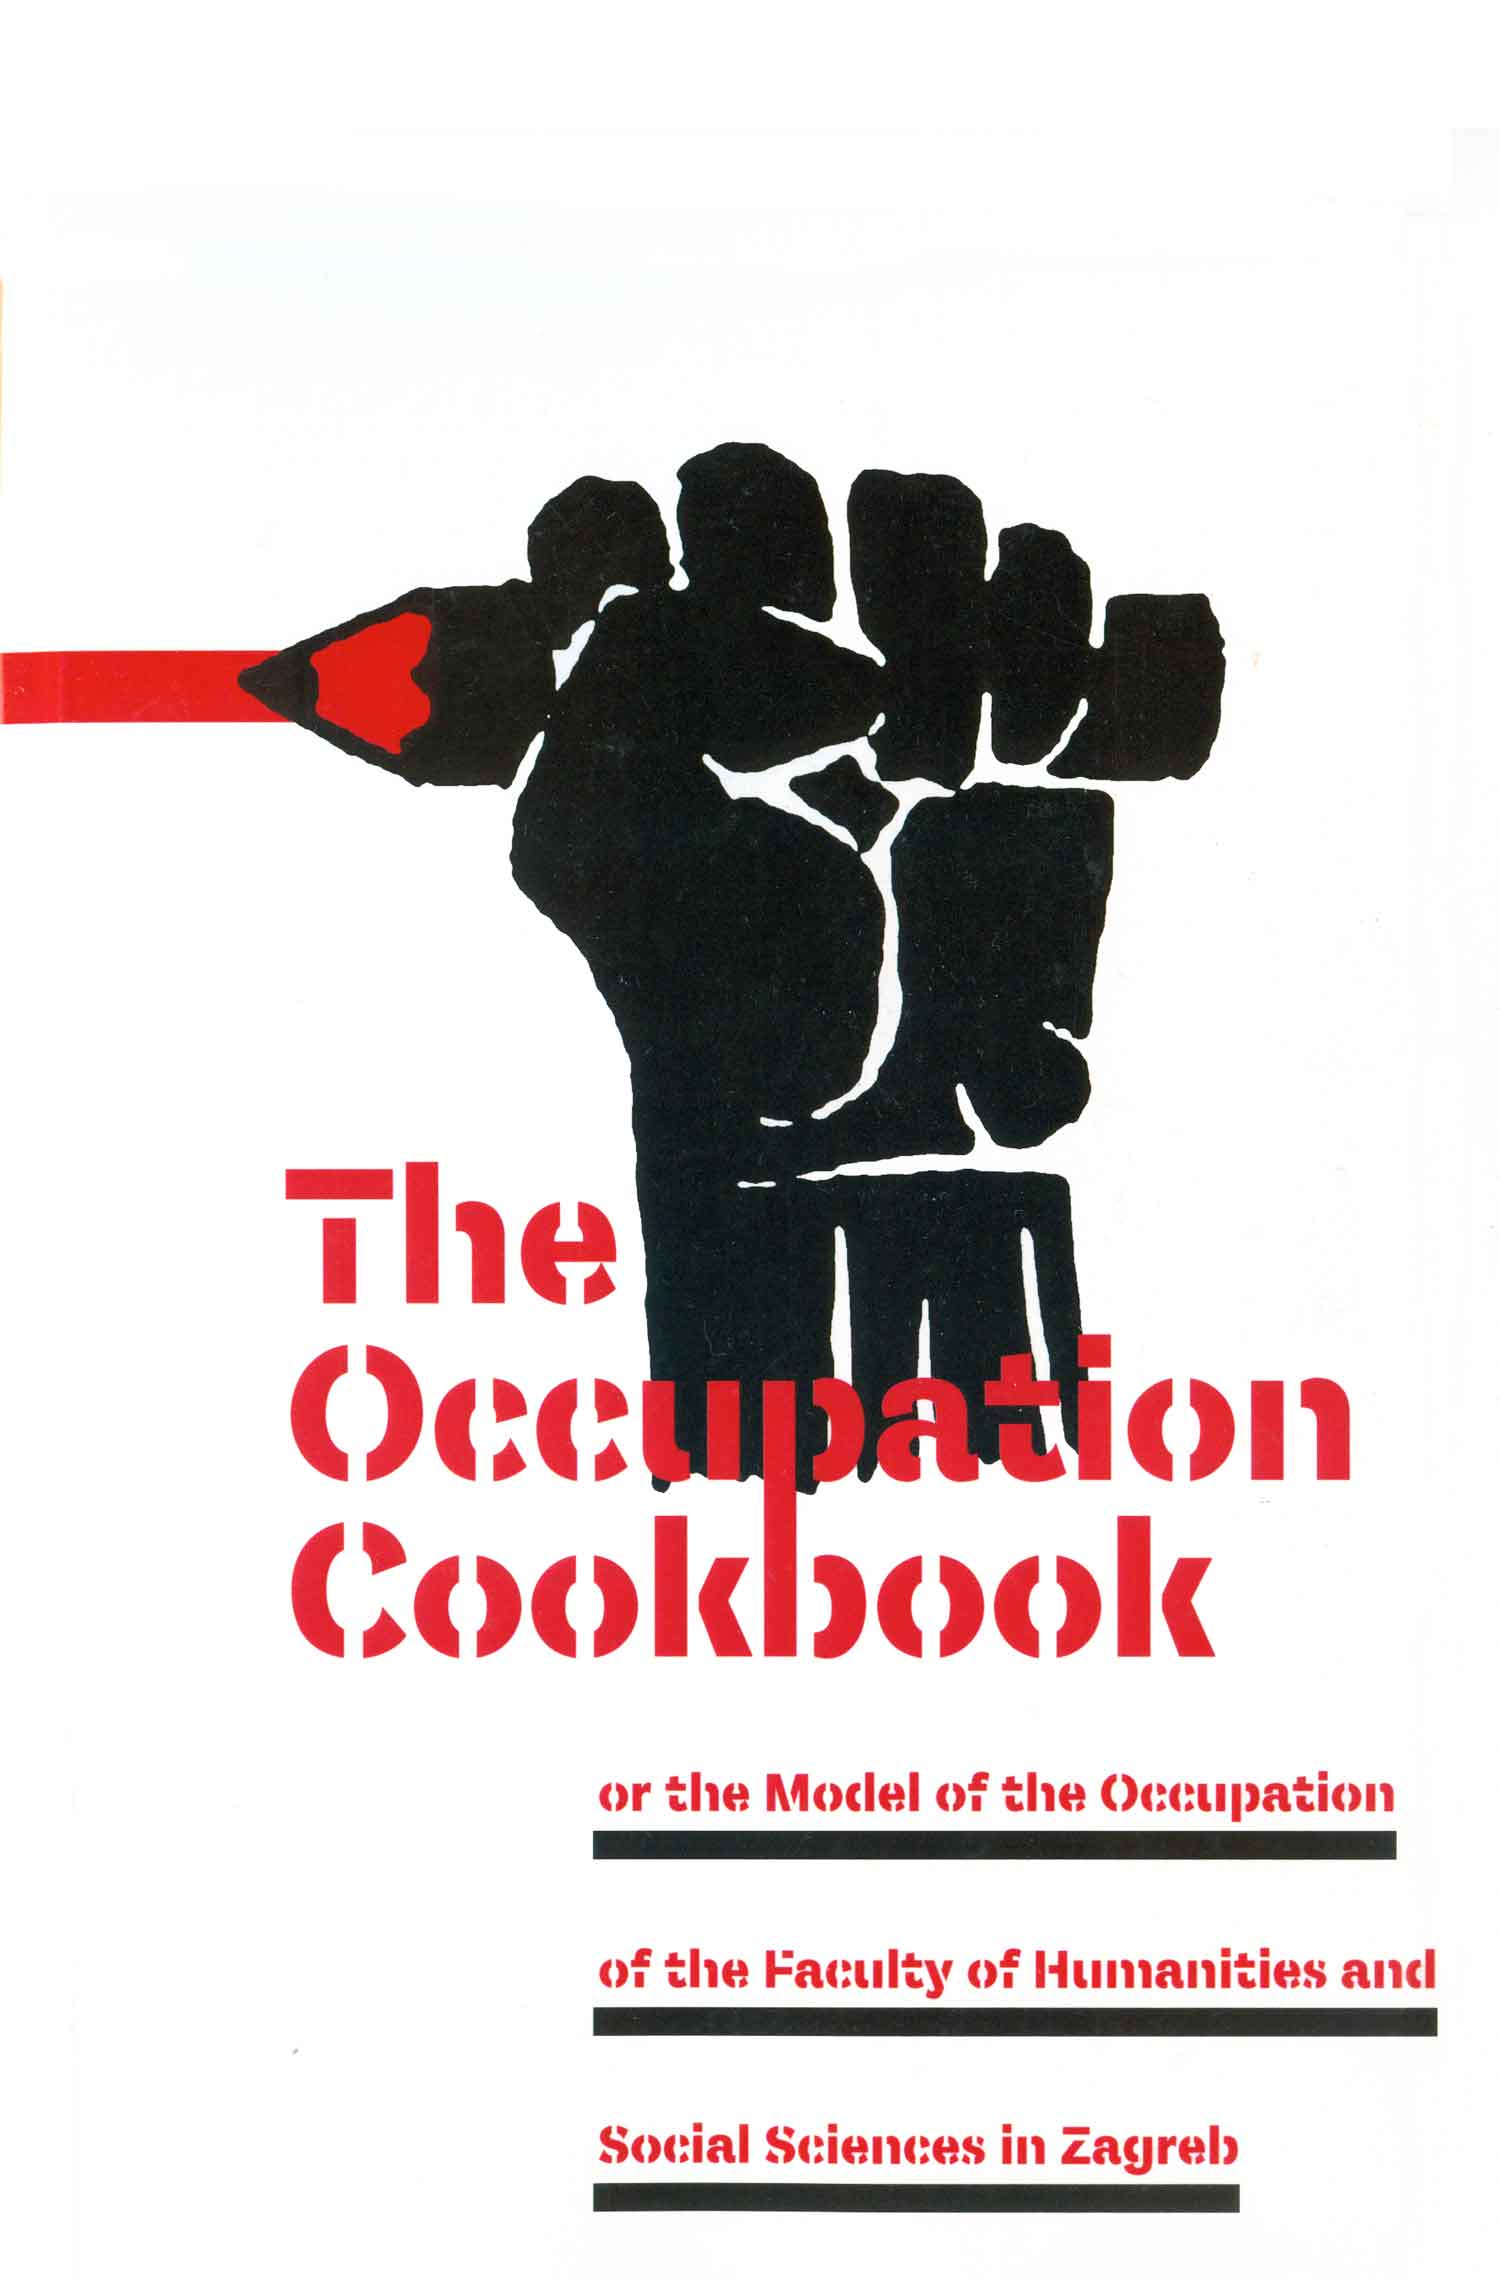 bousquet_occupationco_minorcomp10_dejan